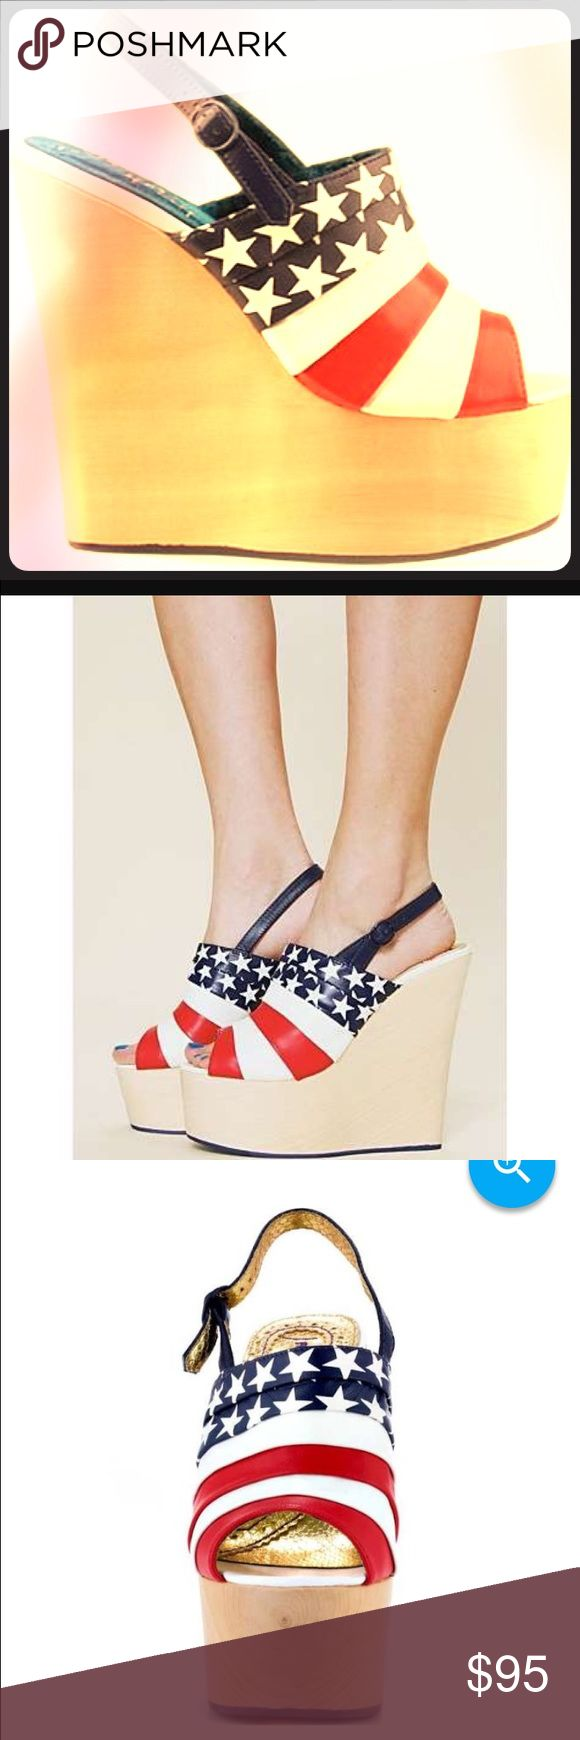 Irregular choice Chica chola USA flag platform Irregular choice Chica chola USA American flag platform wedge sandal shoes red and blue 10 - worn once - comes in original box Irregular choice Shoes Platforms